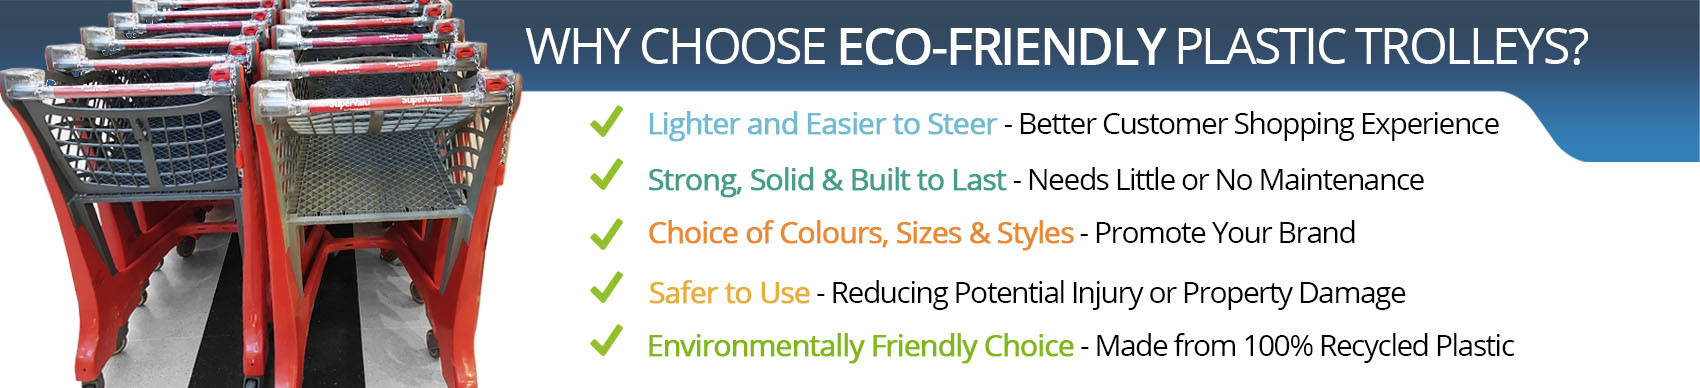 why choose ecofriendly plastic trolleys